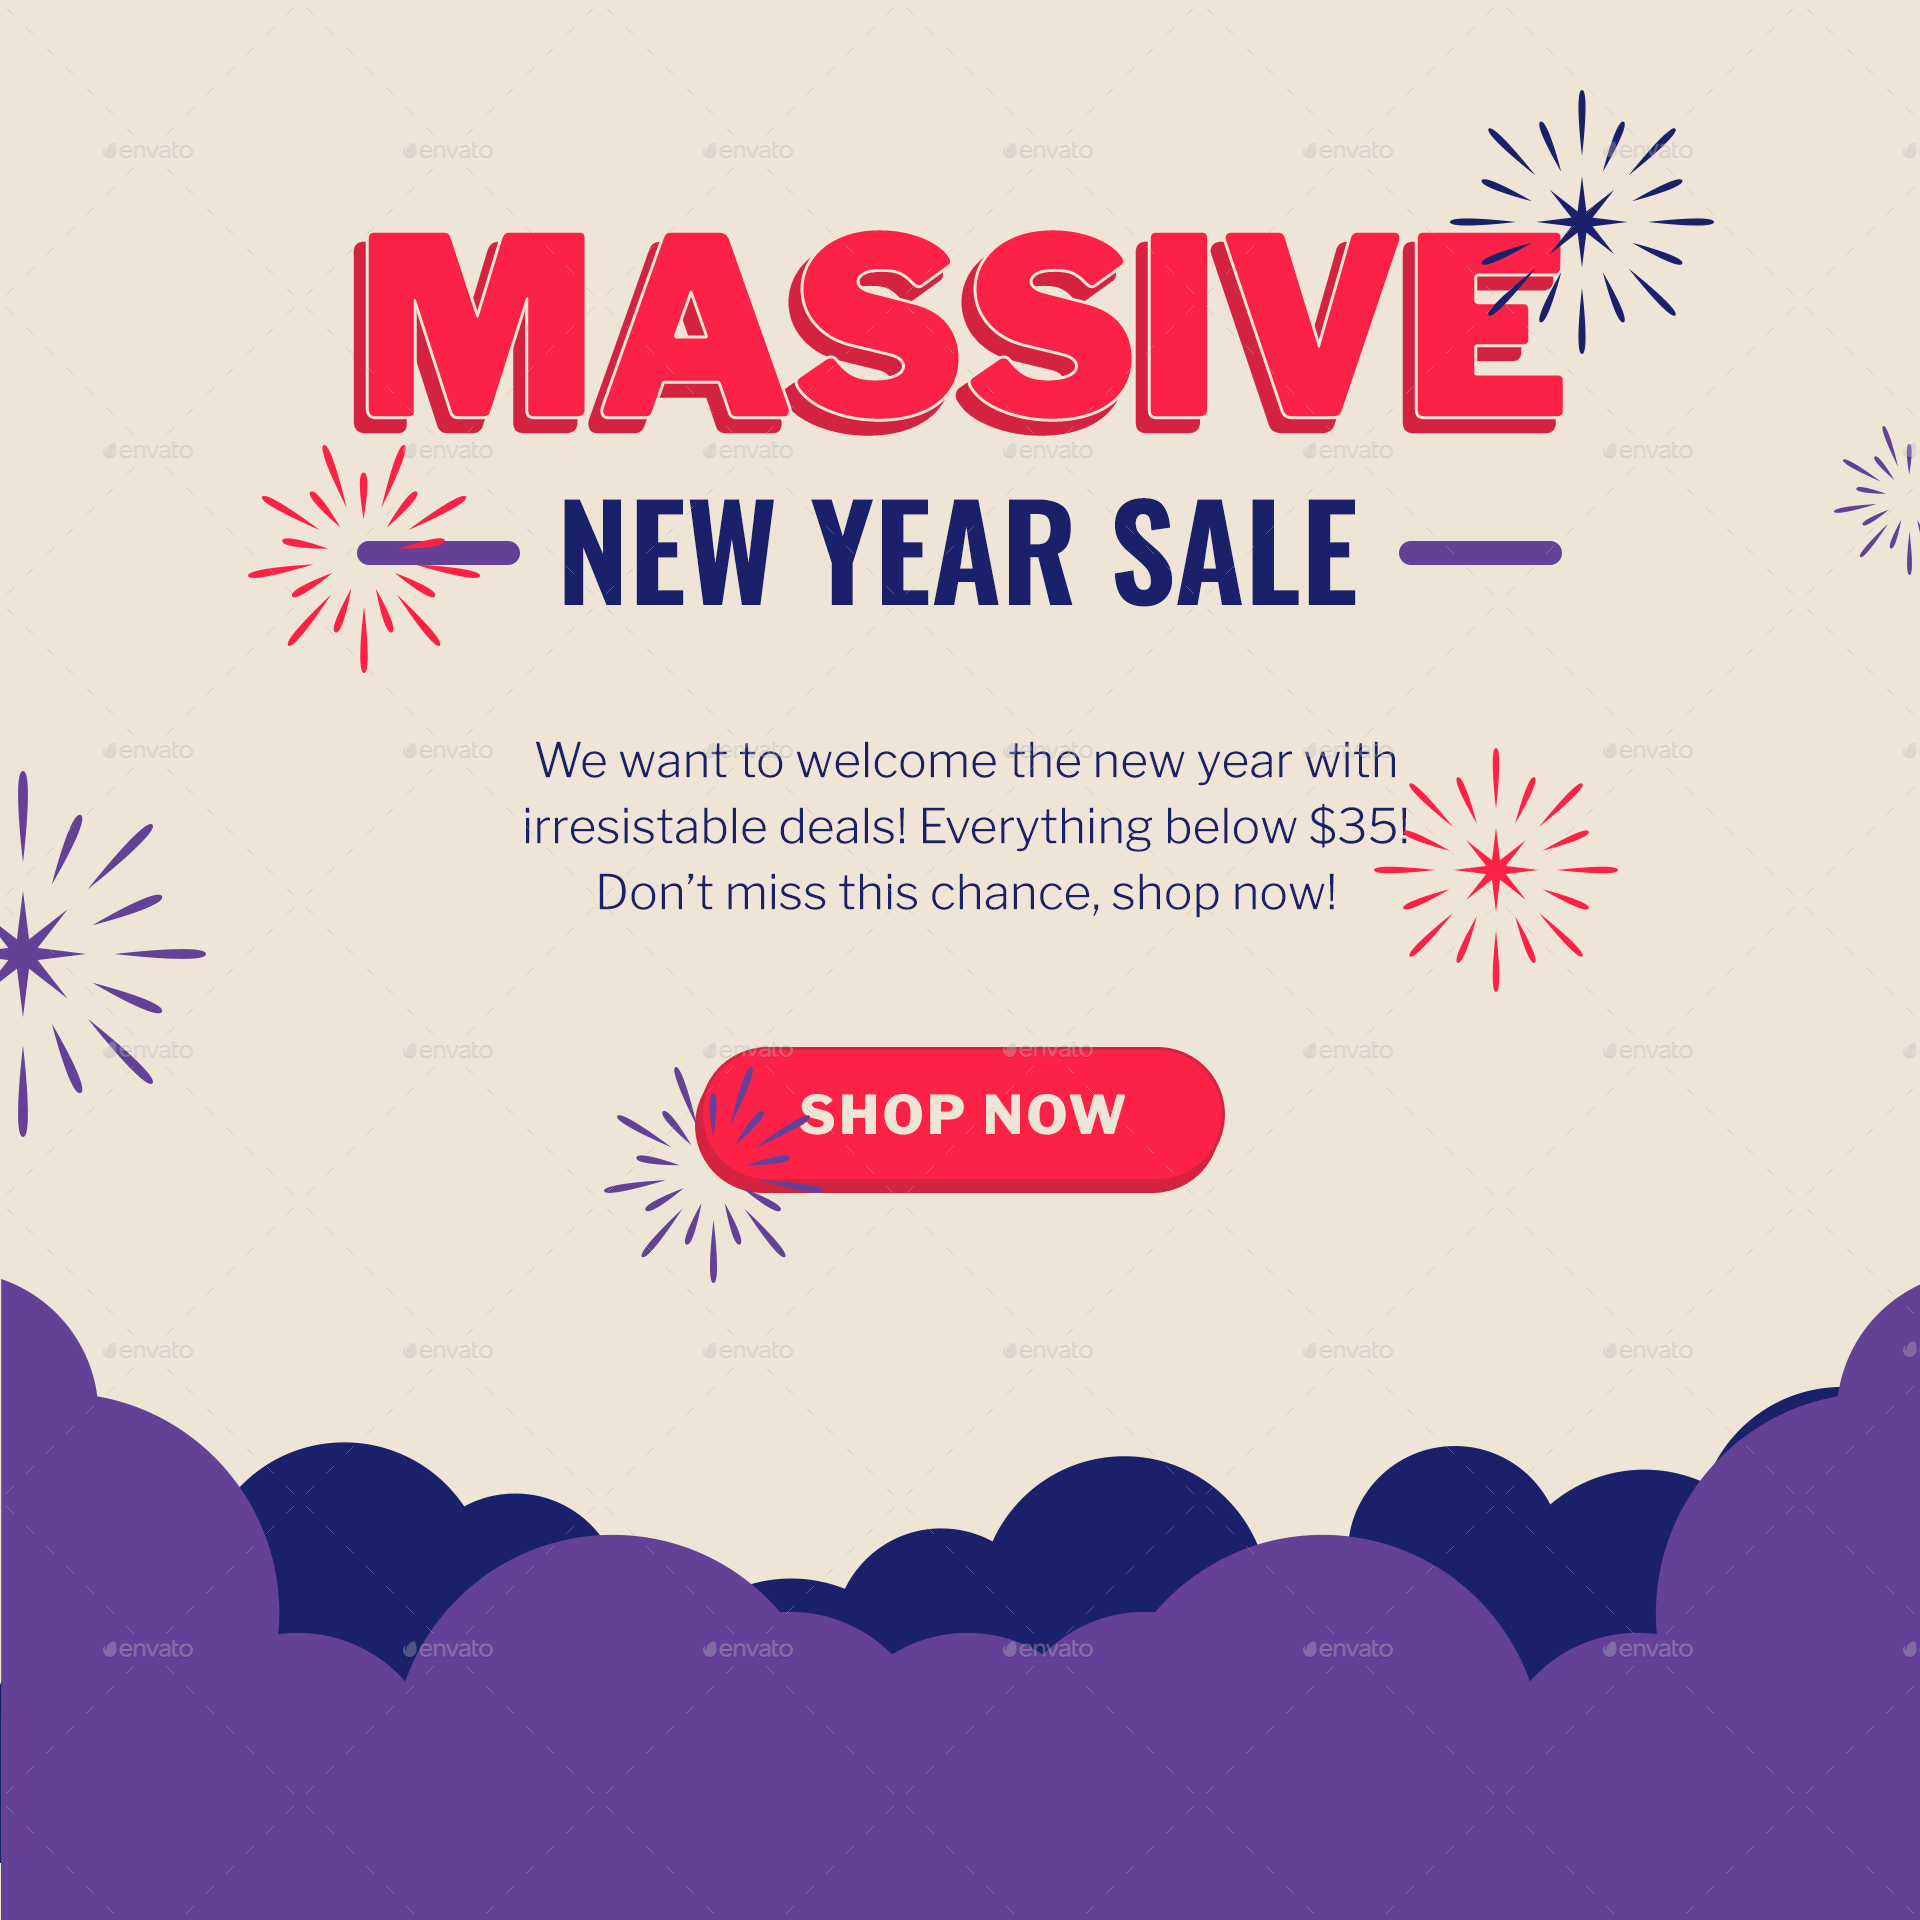 Holiday Sale Banners For Christmas Halloween New Year Flexible Facebook Instagram Pinterest Ad Sale Banner Holiday Sales Halloween News